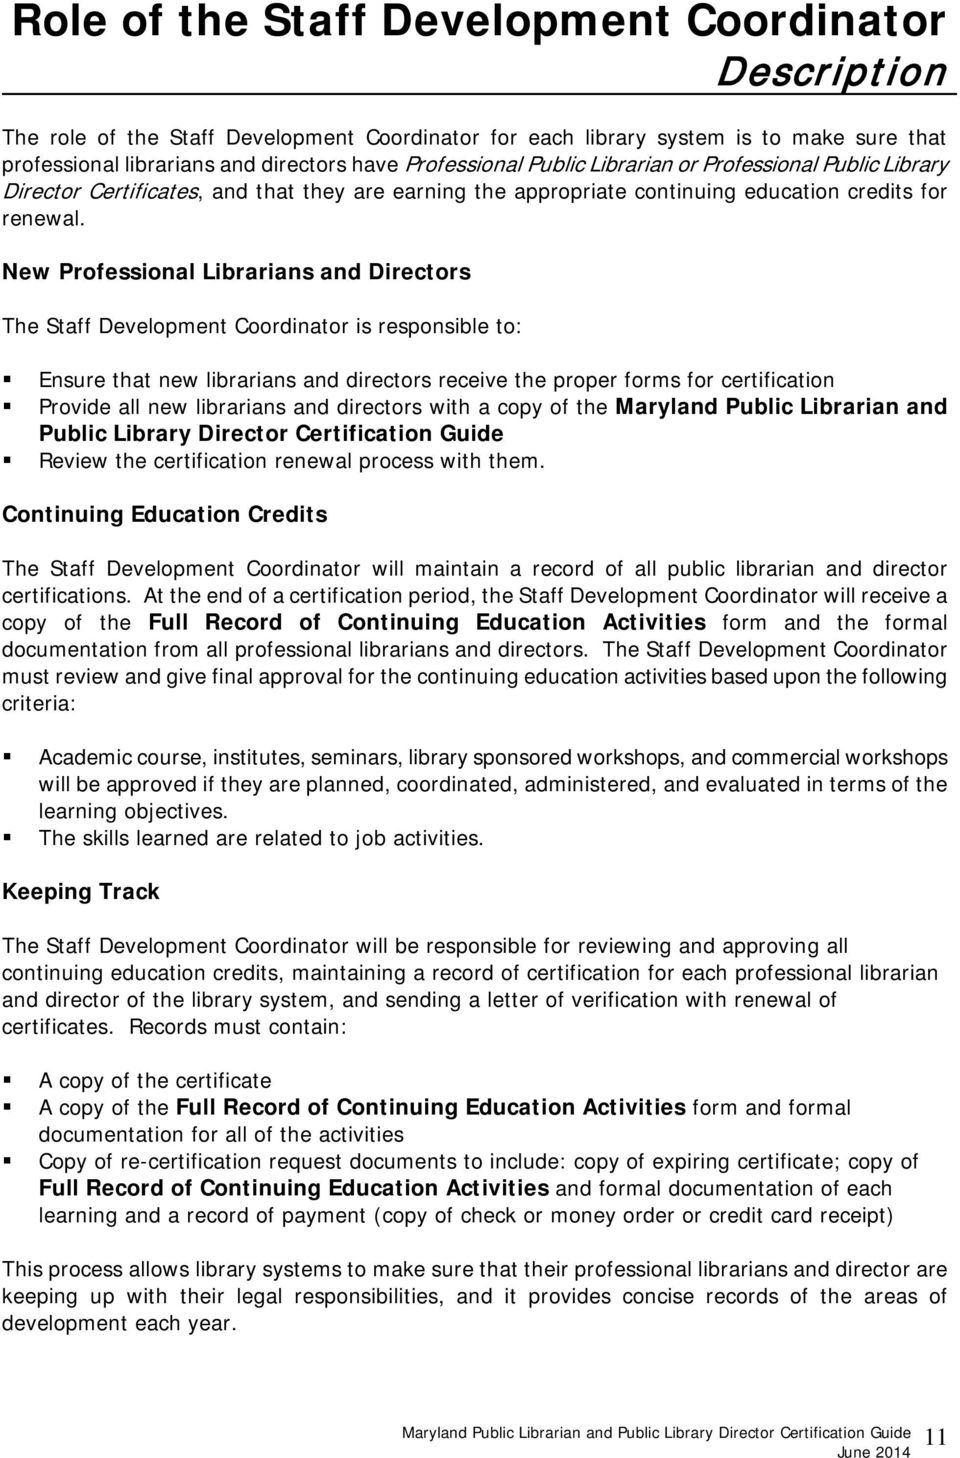 Maryland Public Librarian And Public Library Director Certification